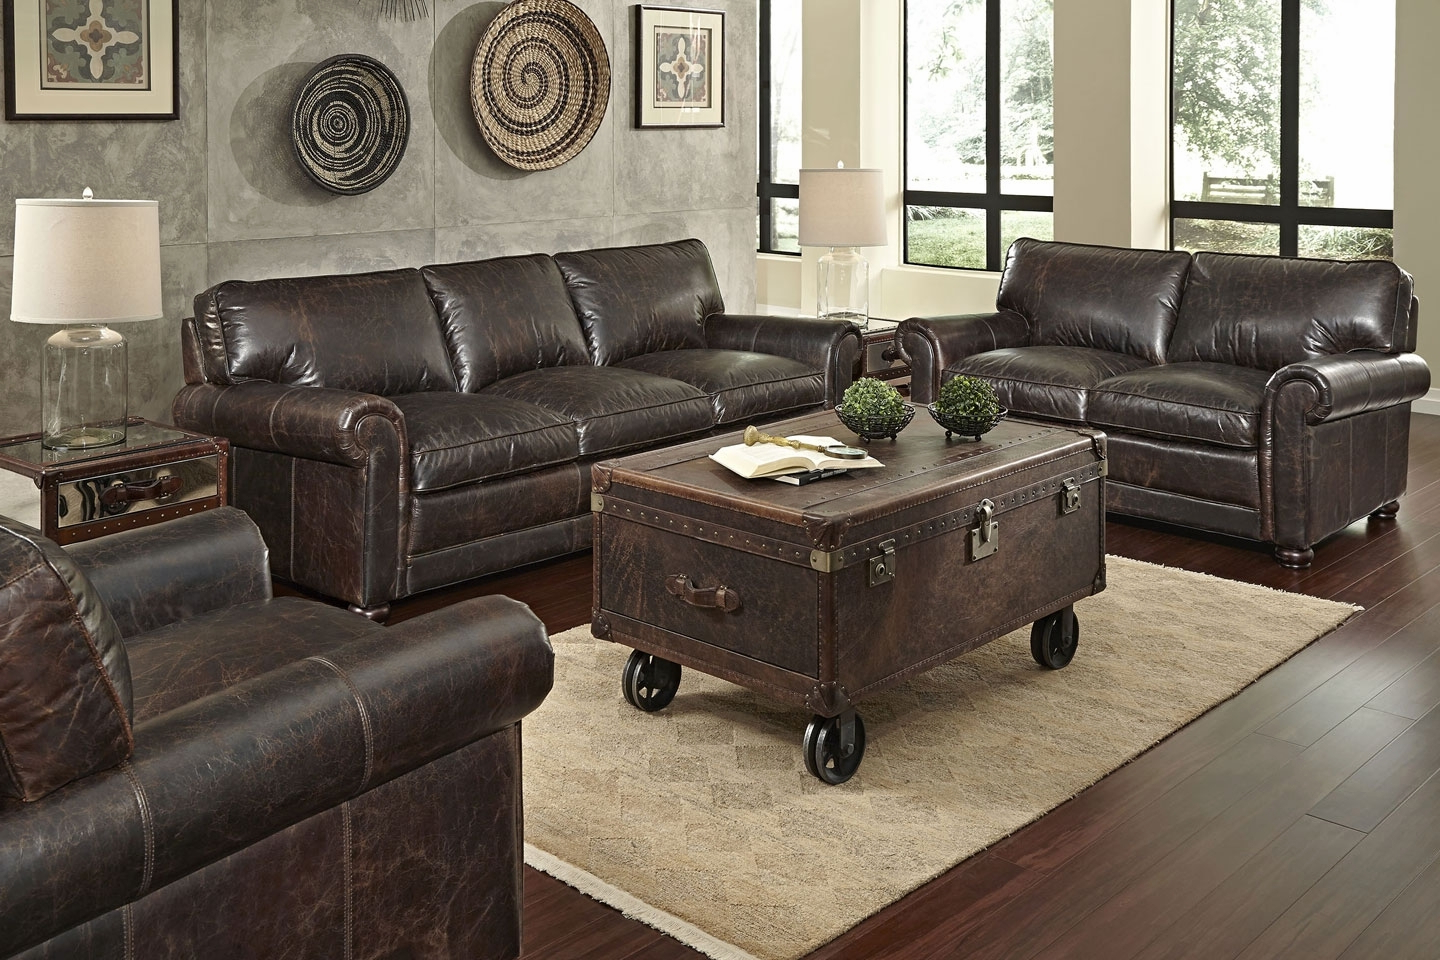 Recent Elegant Sofa Loveseat And Chair Set 49 On Living Room Sofa Ideas With Sofa Loveseat And Chair Set (View 12 of 20)